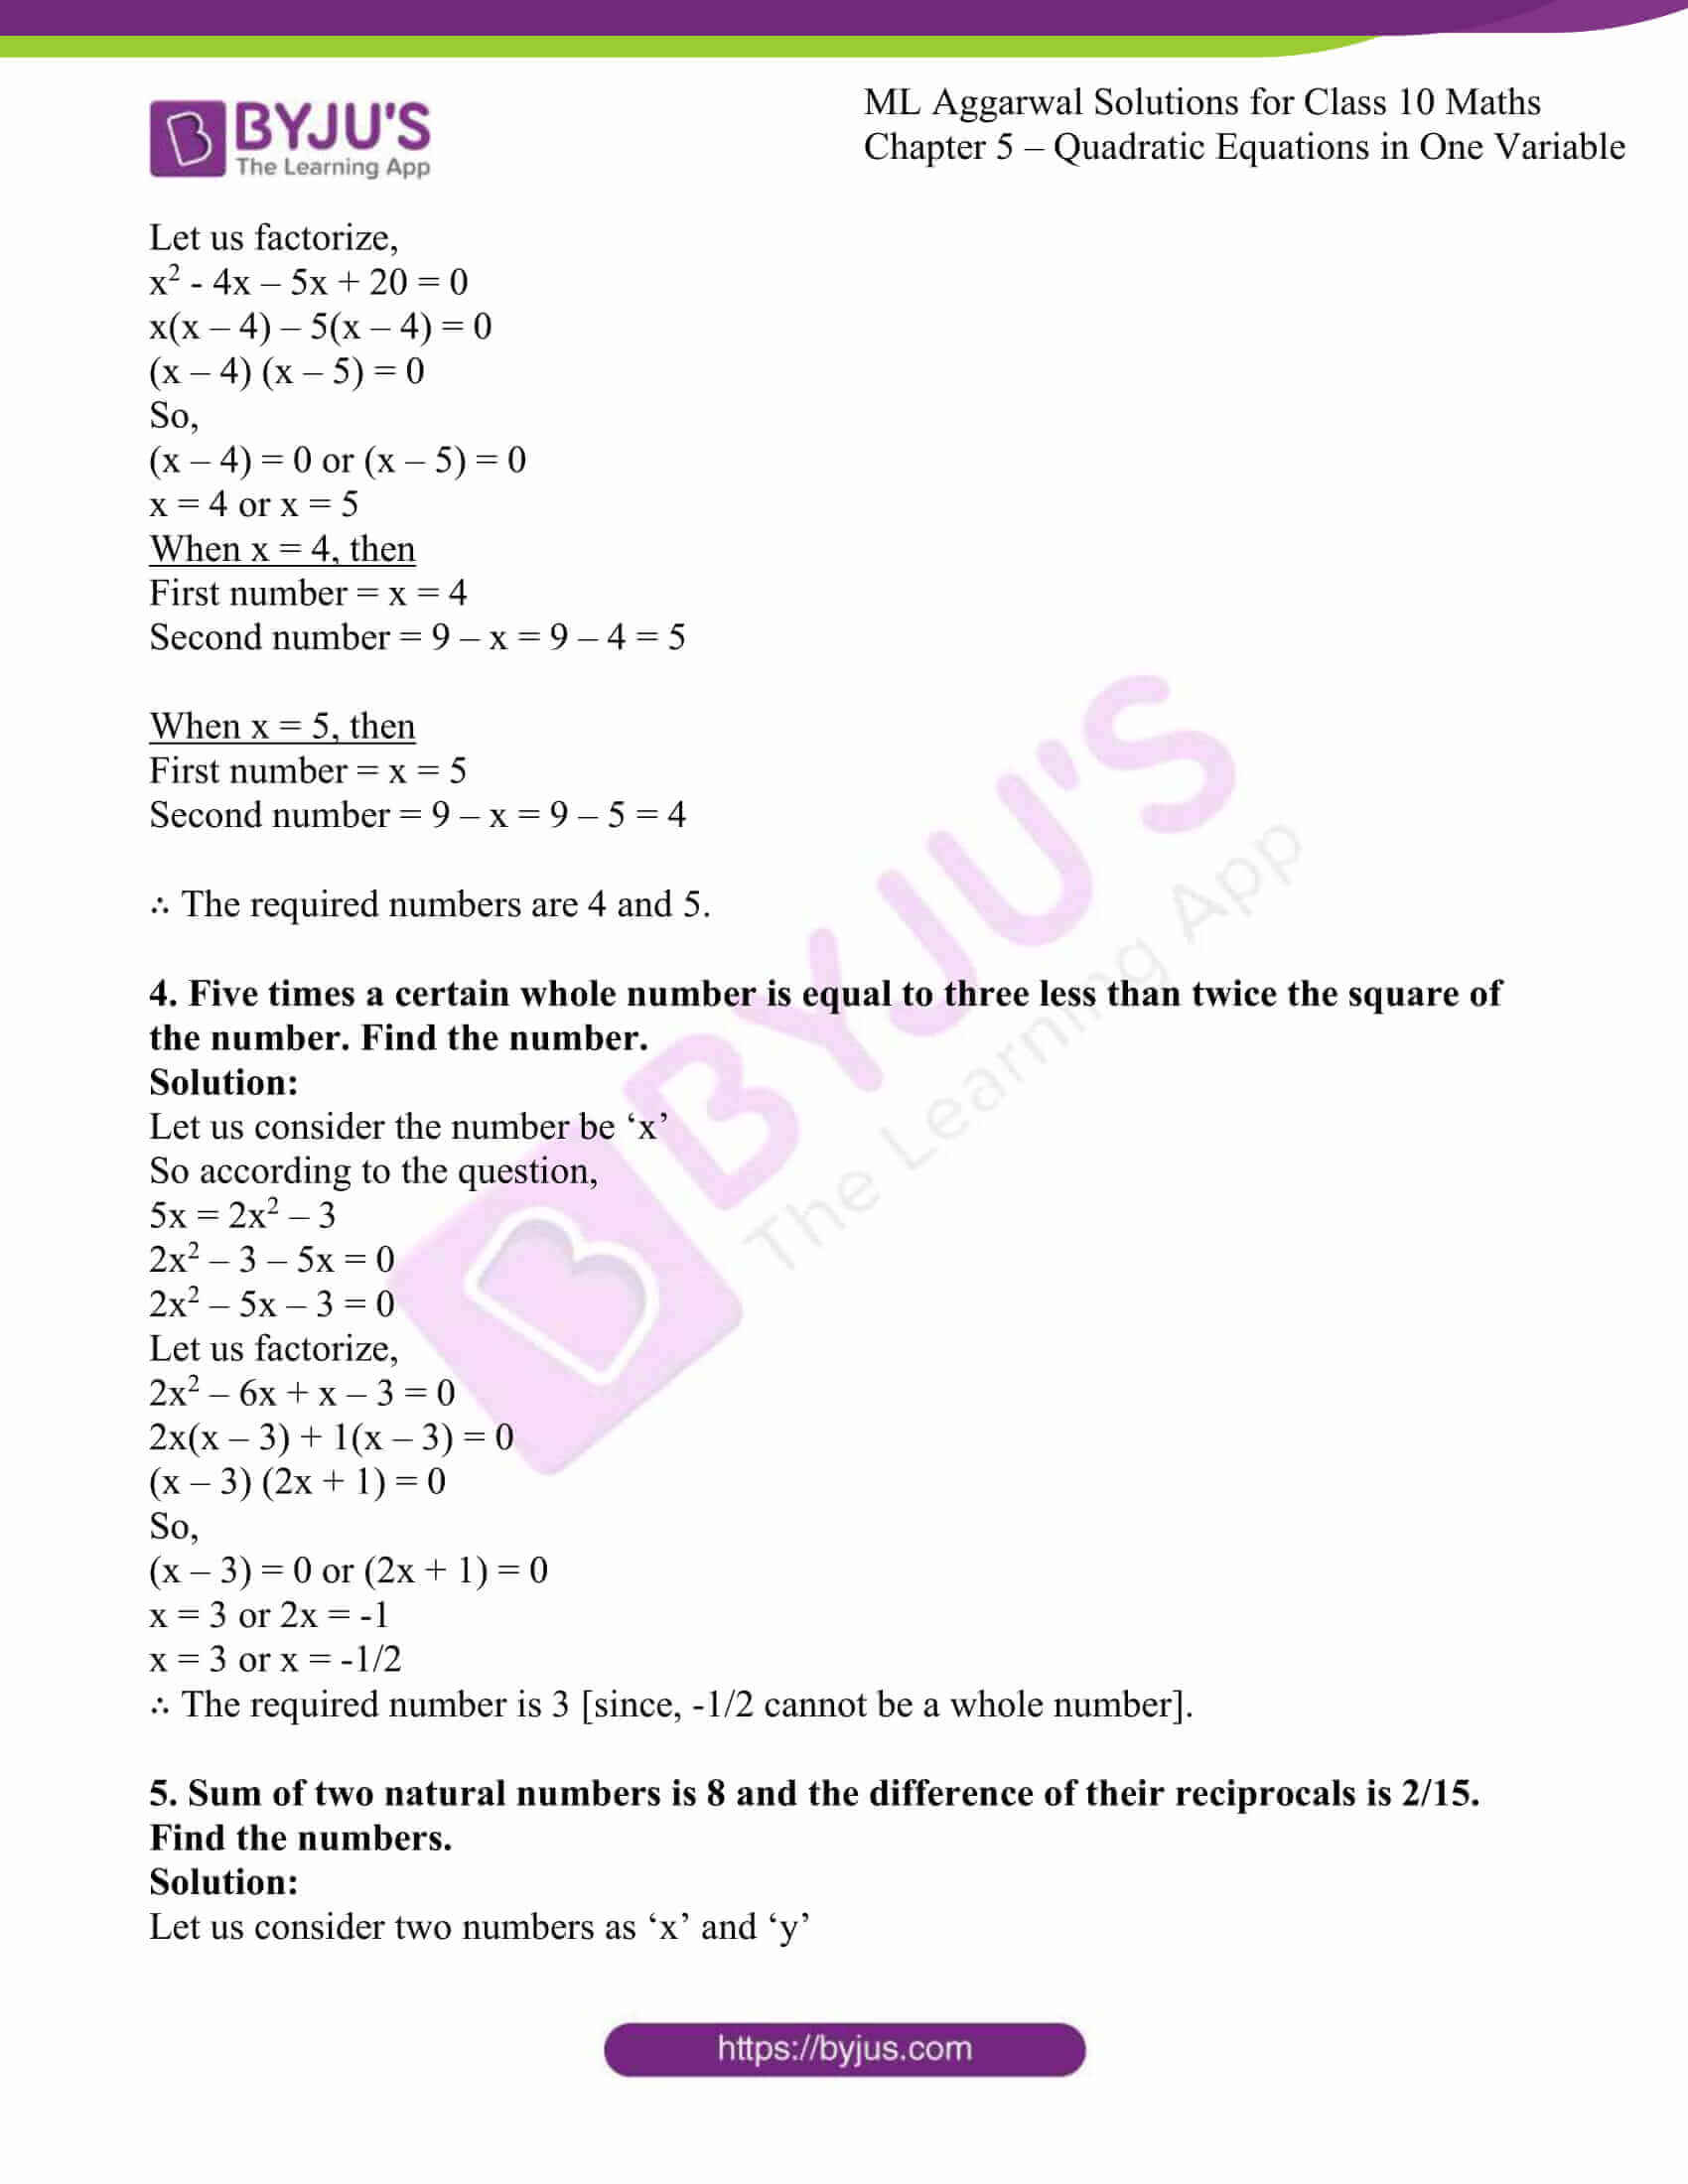 ml aggarwal solutions class 10 maths chapter 5 54